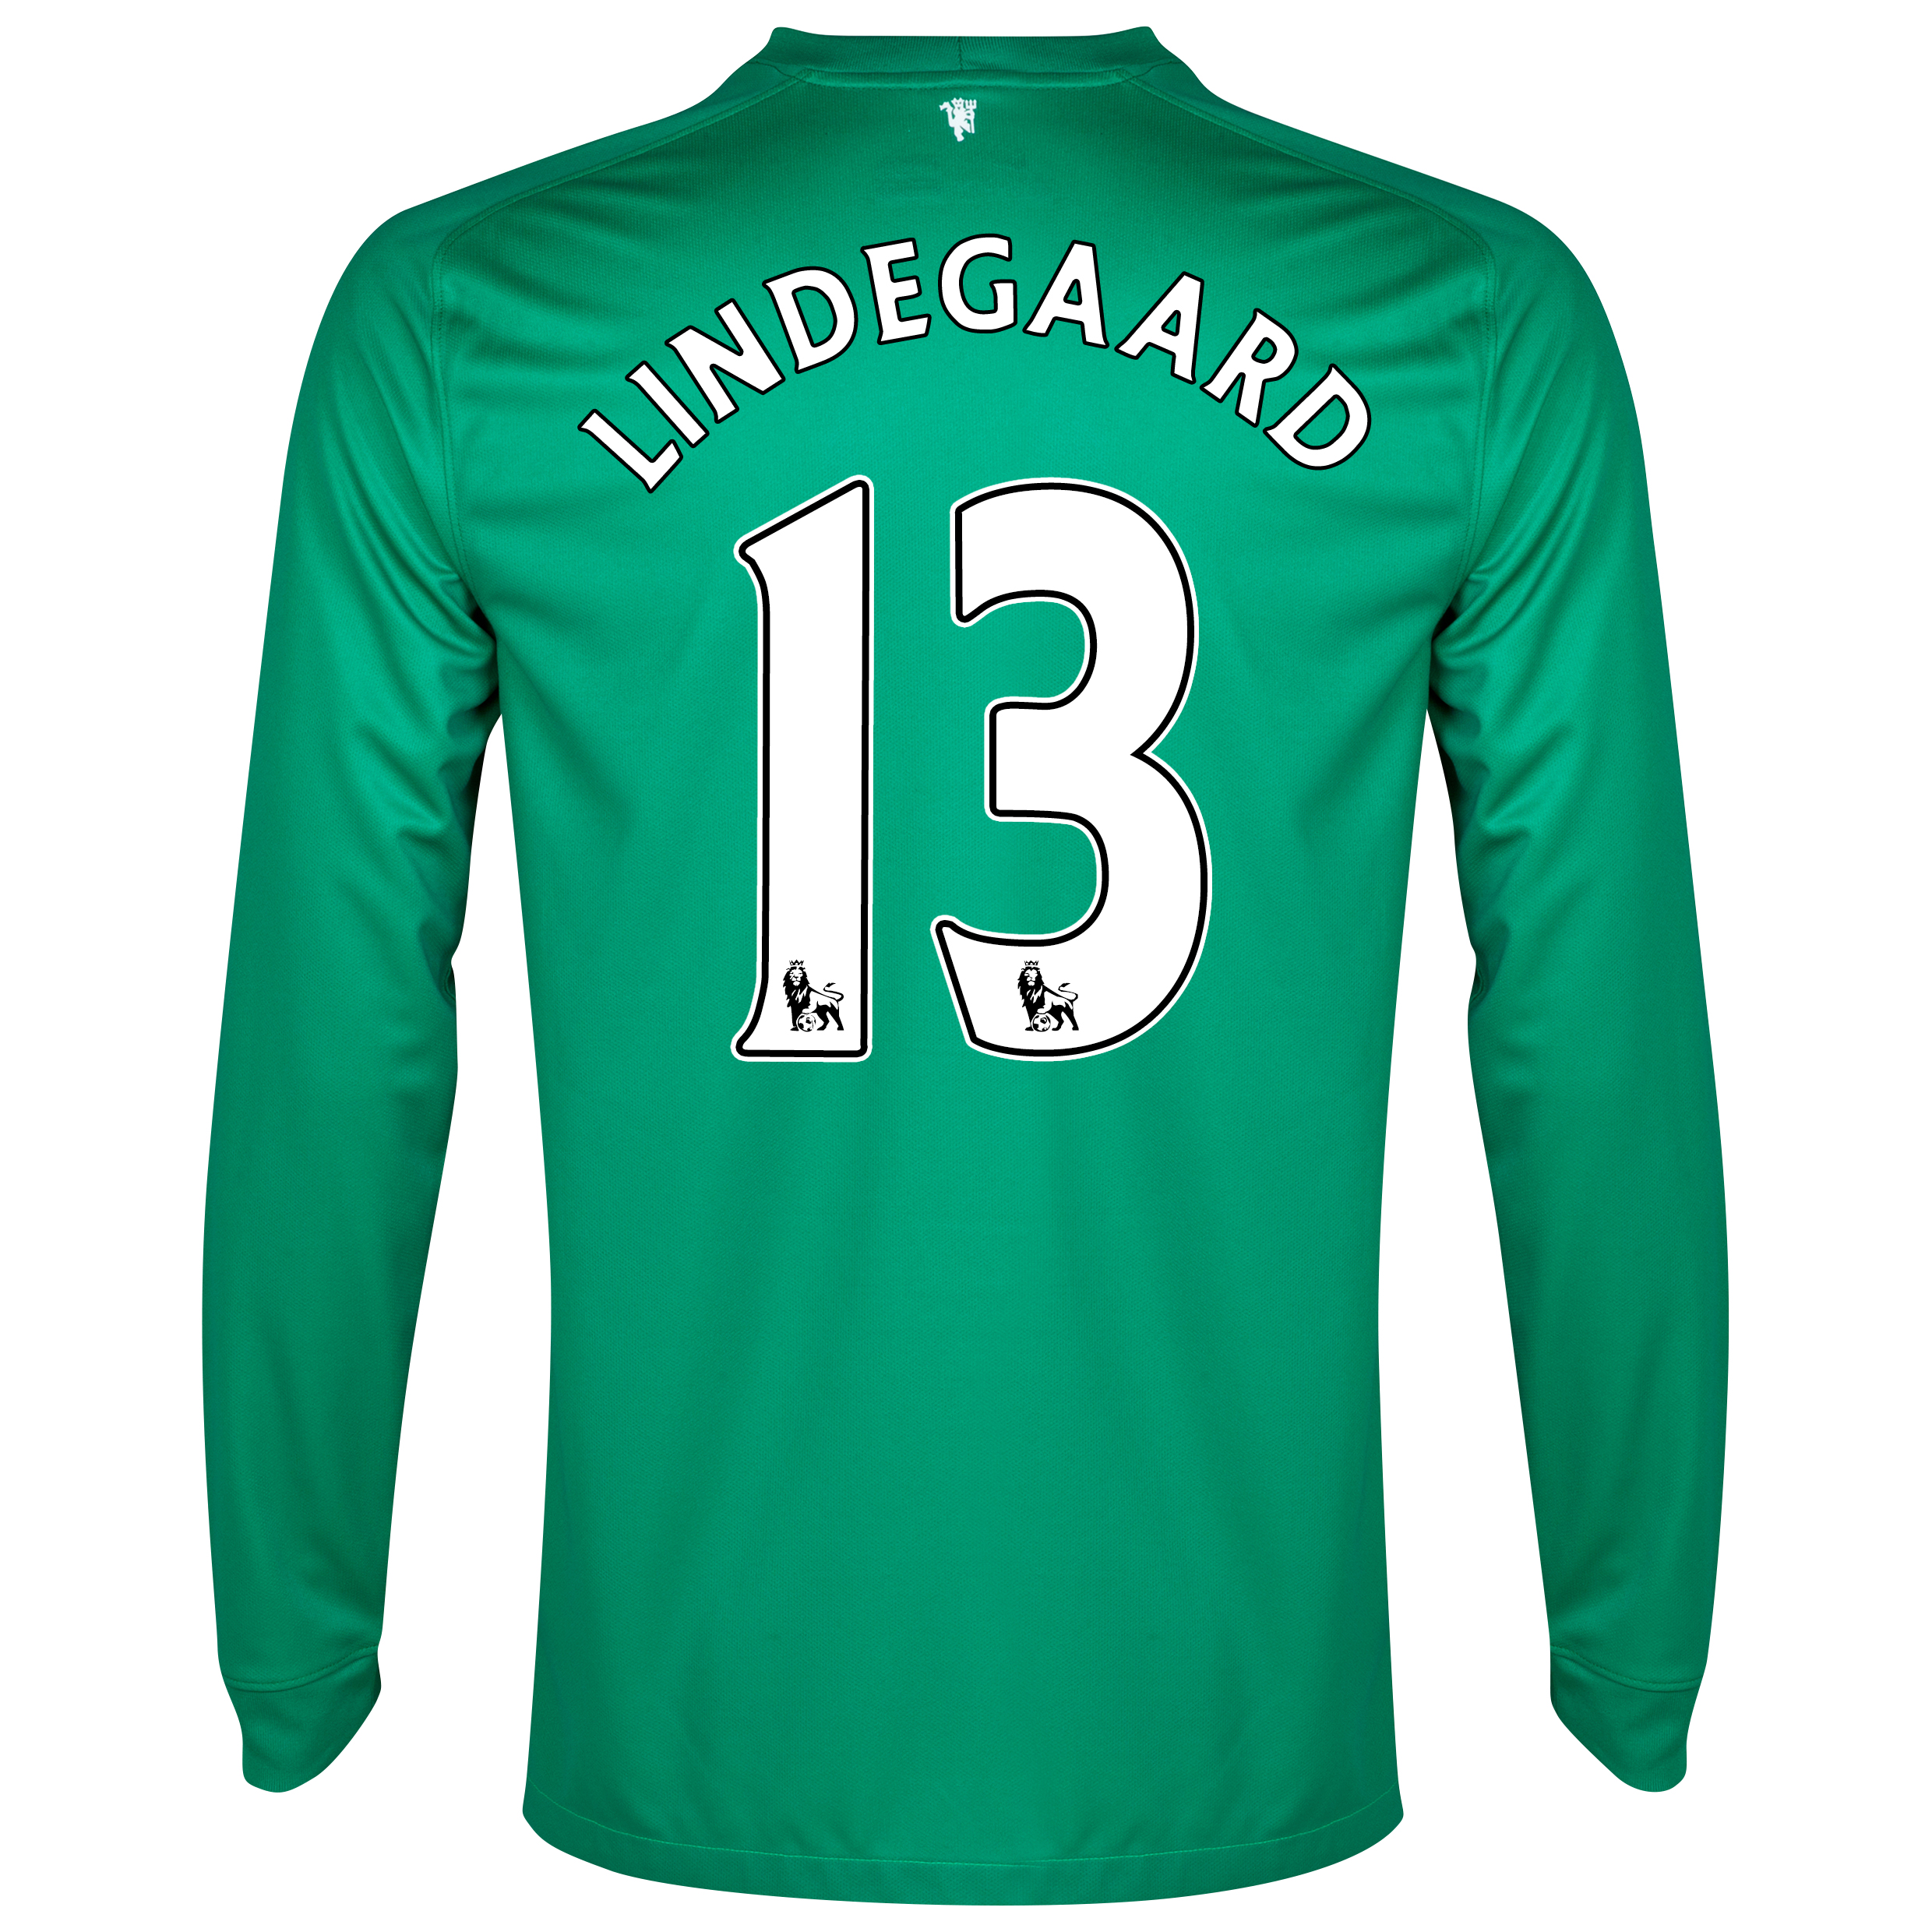 Manchester United Goalkeeper Shirt 2014/15 with Lindegaard 13 printing